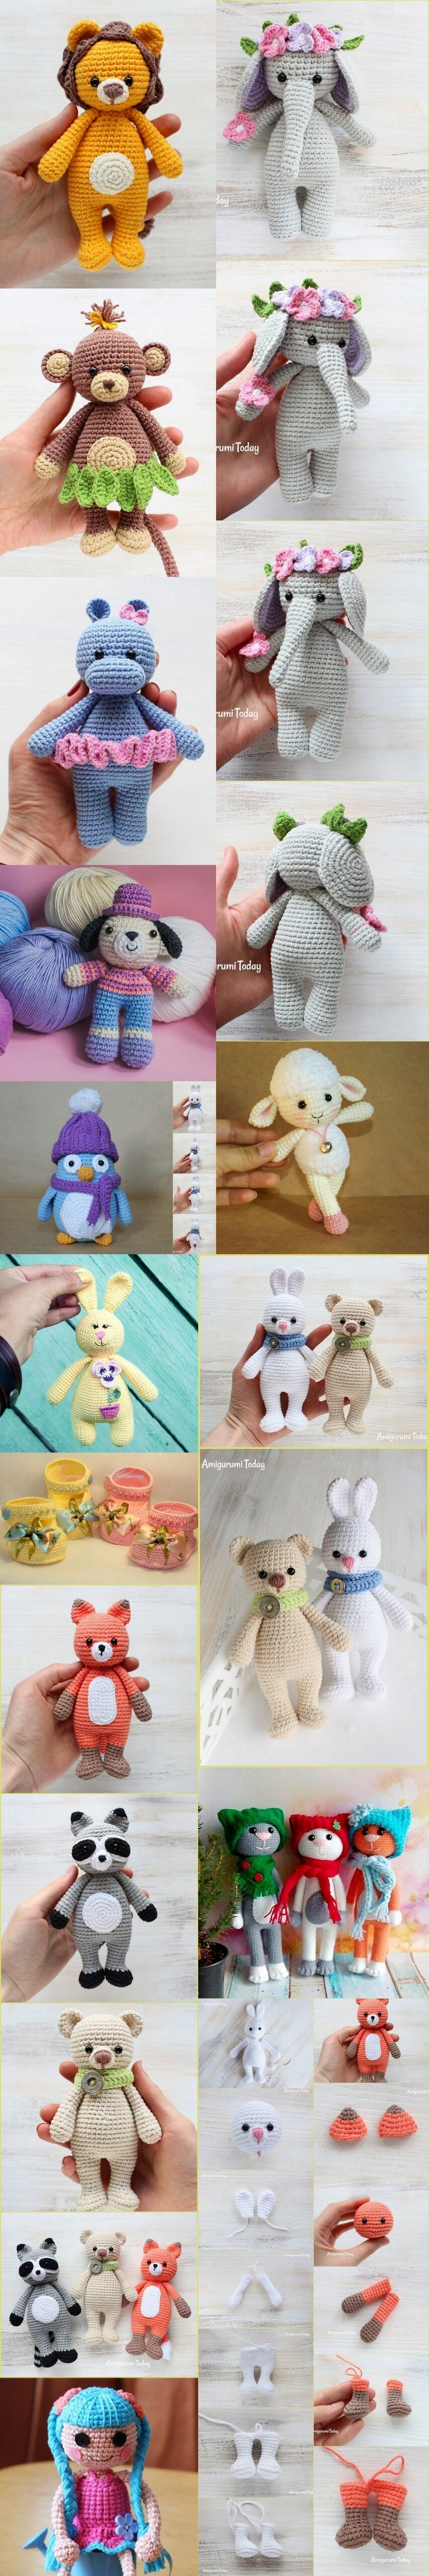 Crochet Toys Ideas (2)